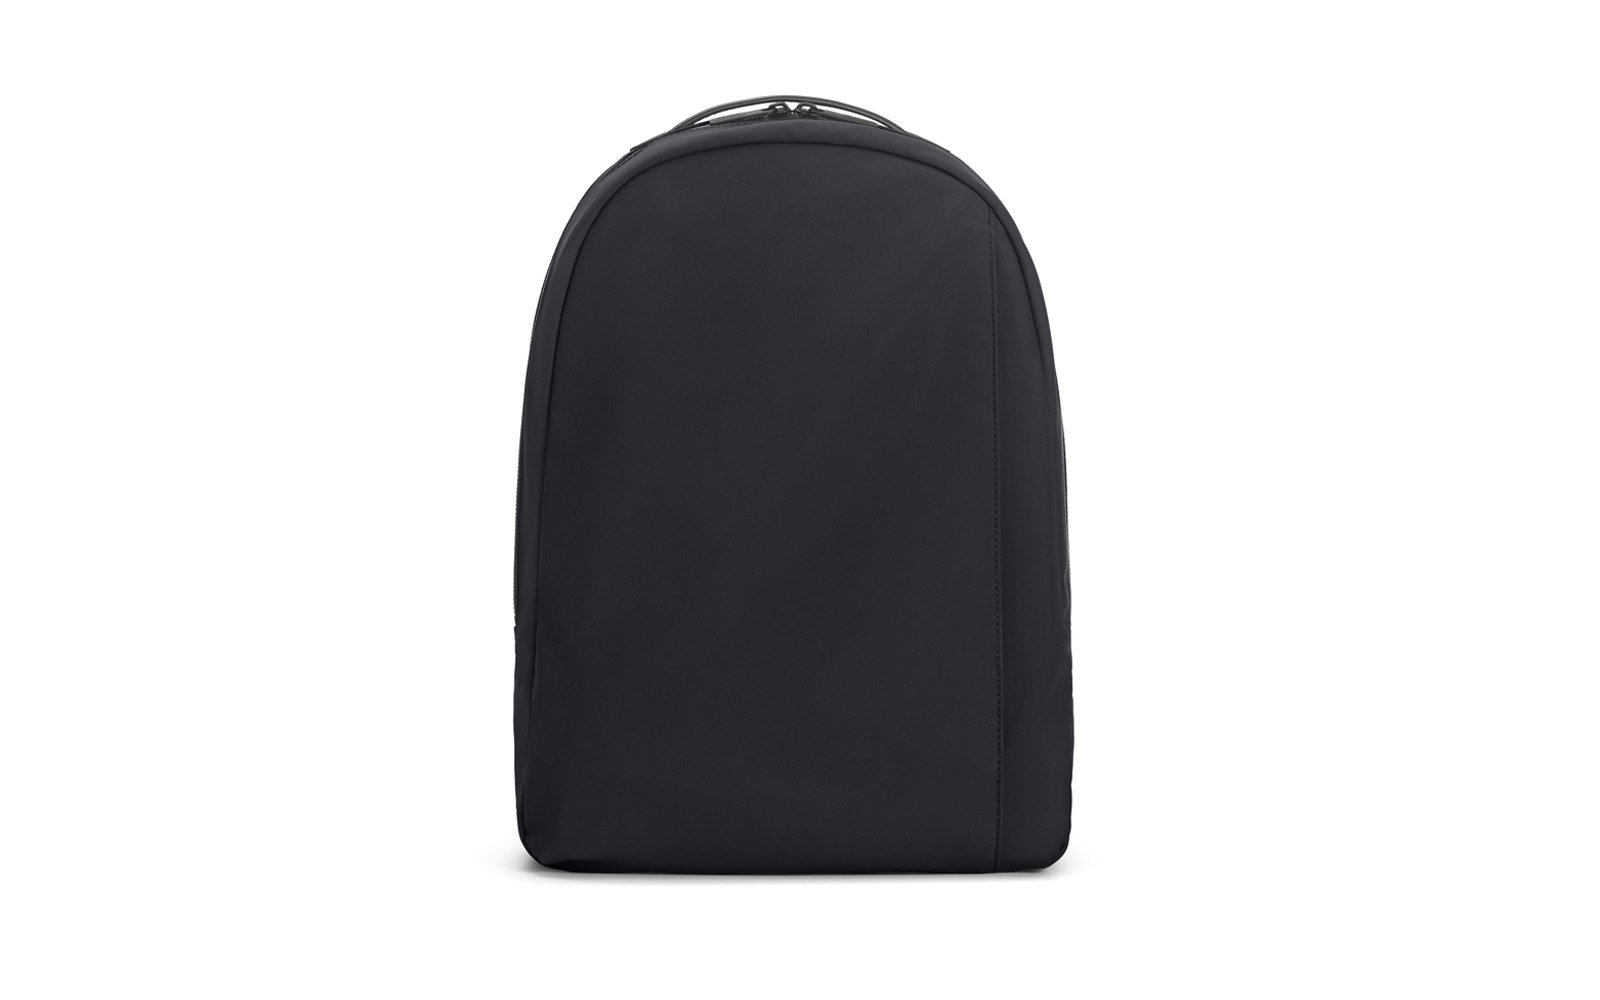 11 Small Backpacks With Just Enough Room for the Essentials  2a78b3c65146e